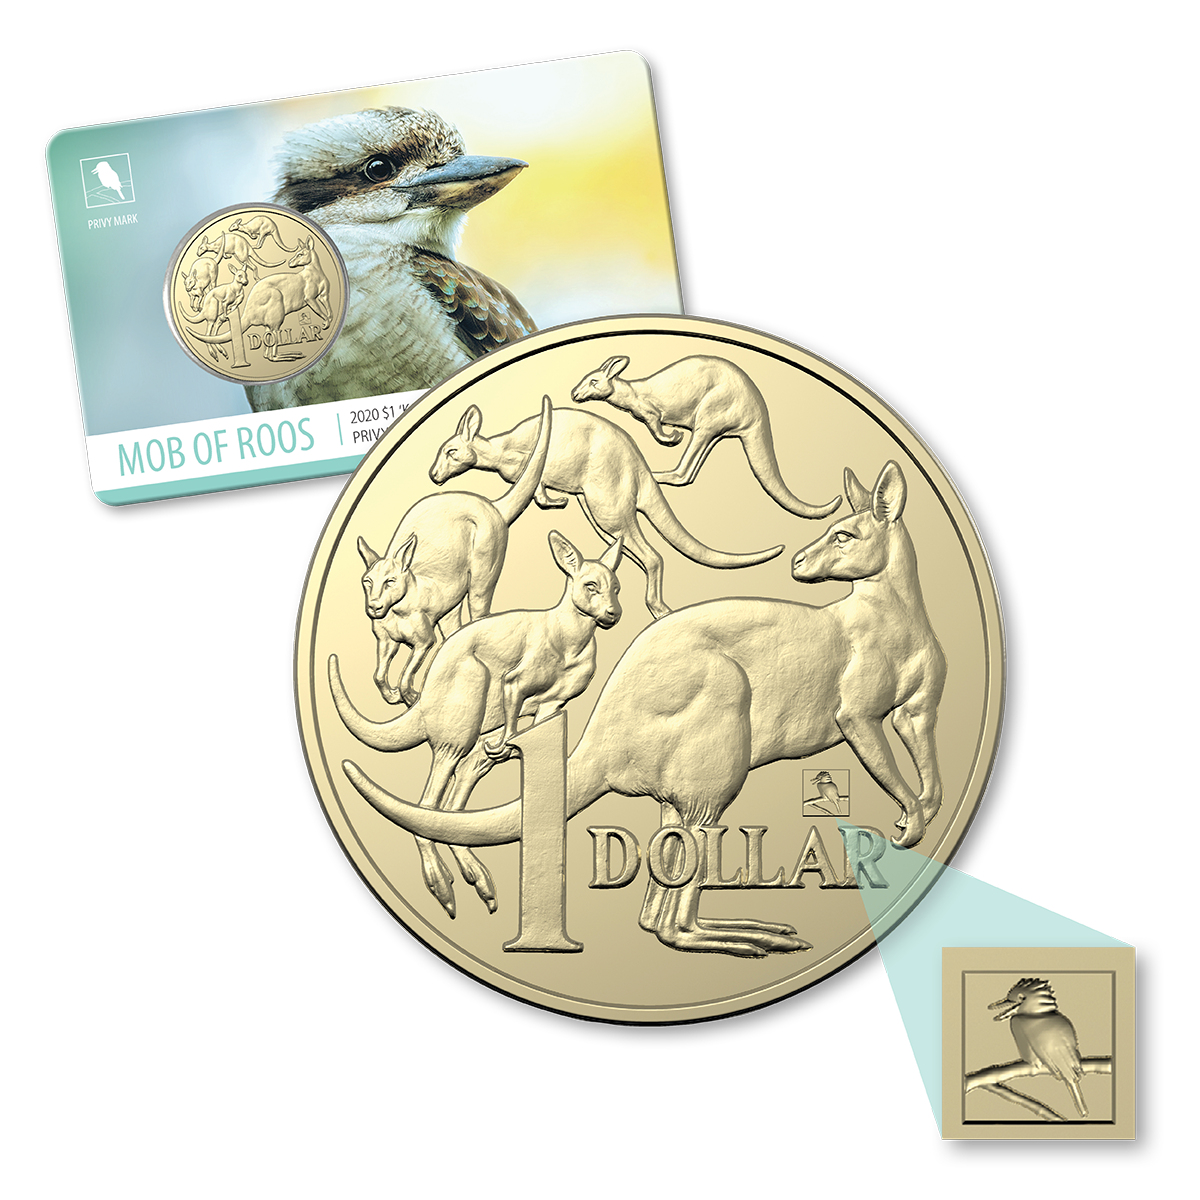 Thumbnail for 2020 Mob of Roos $1 with Kookaburra Privy Mark Sydney ANDA